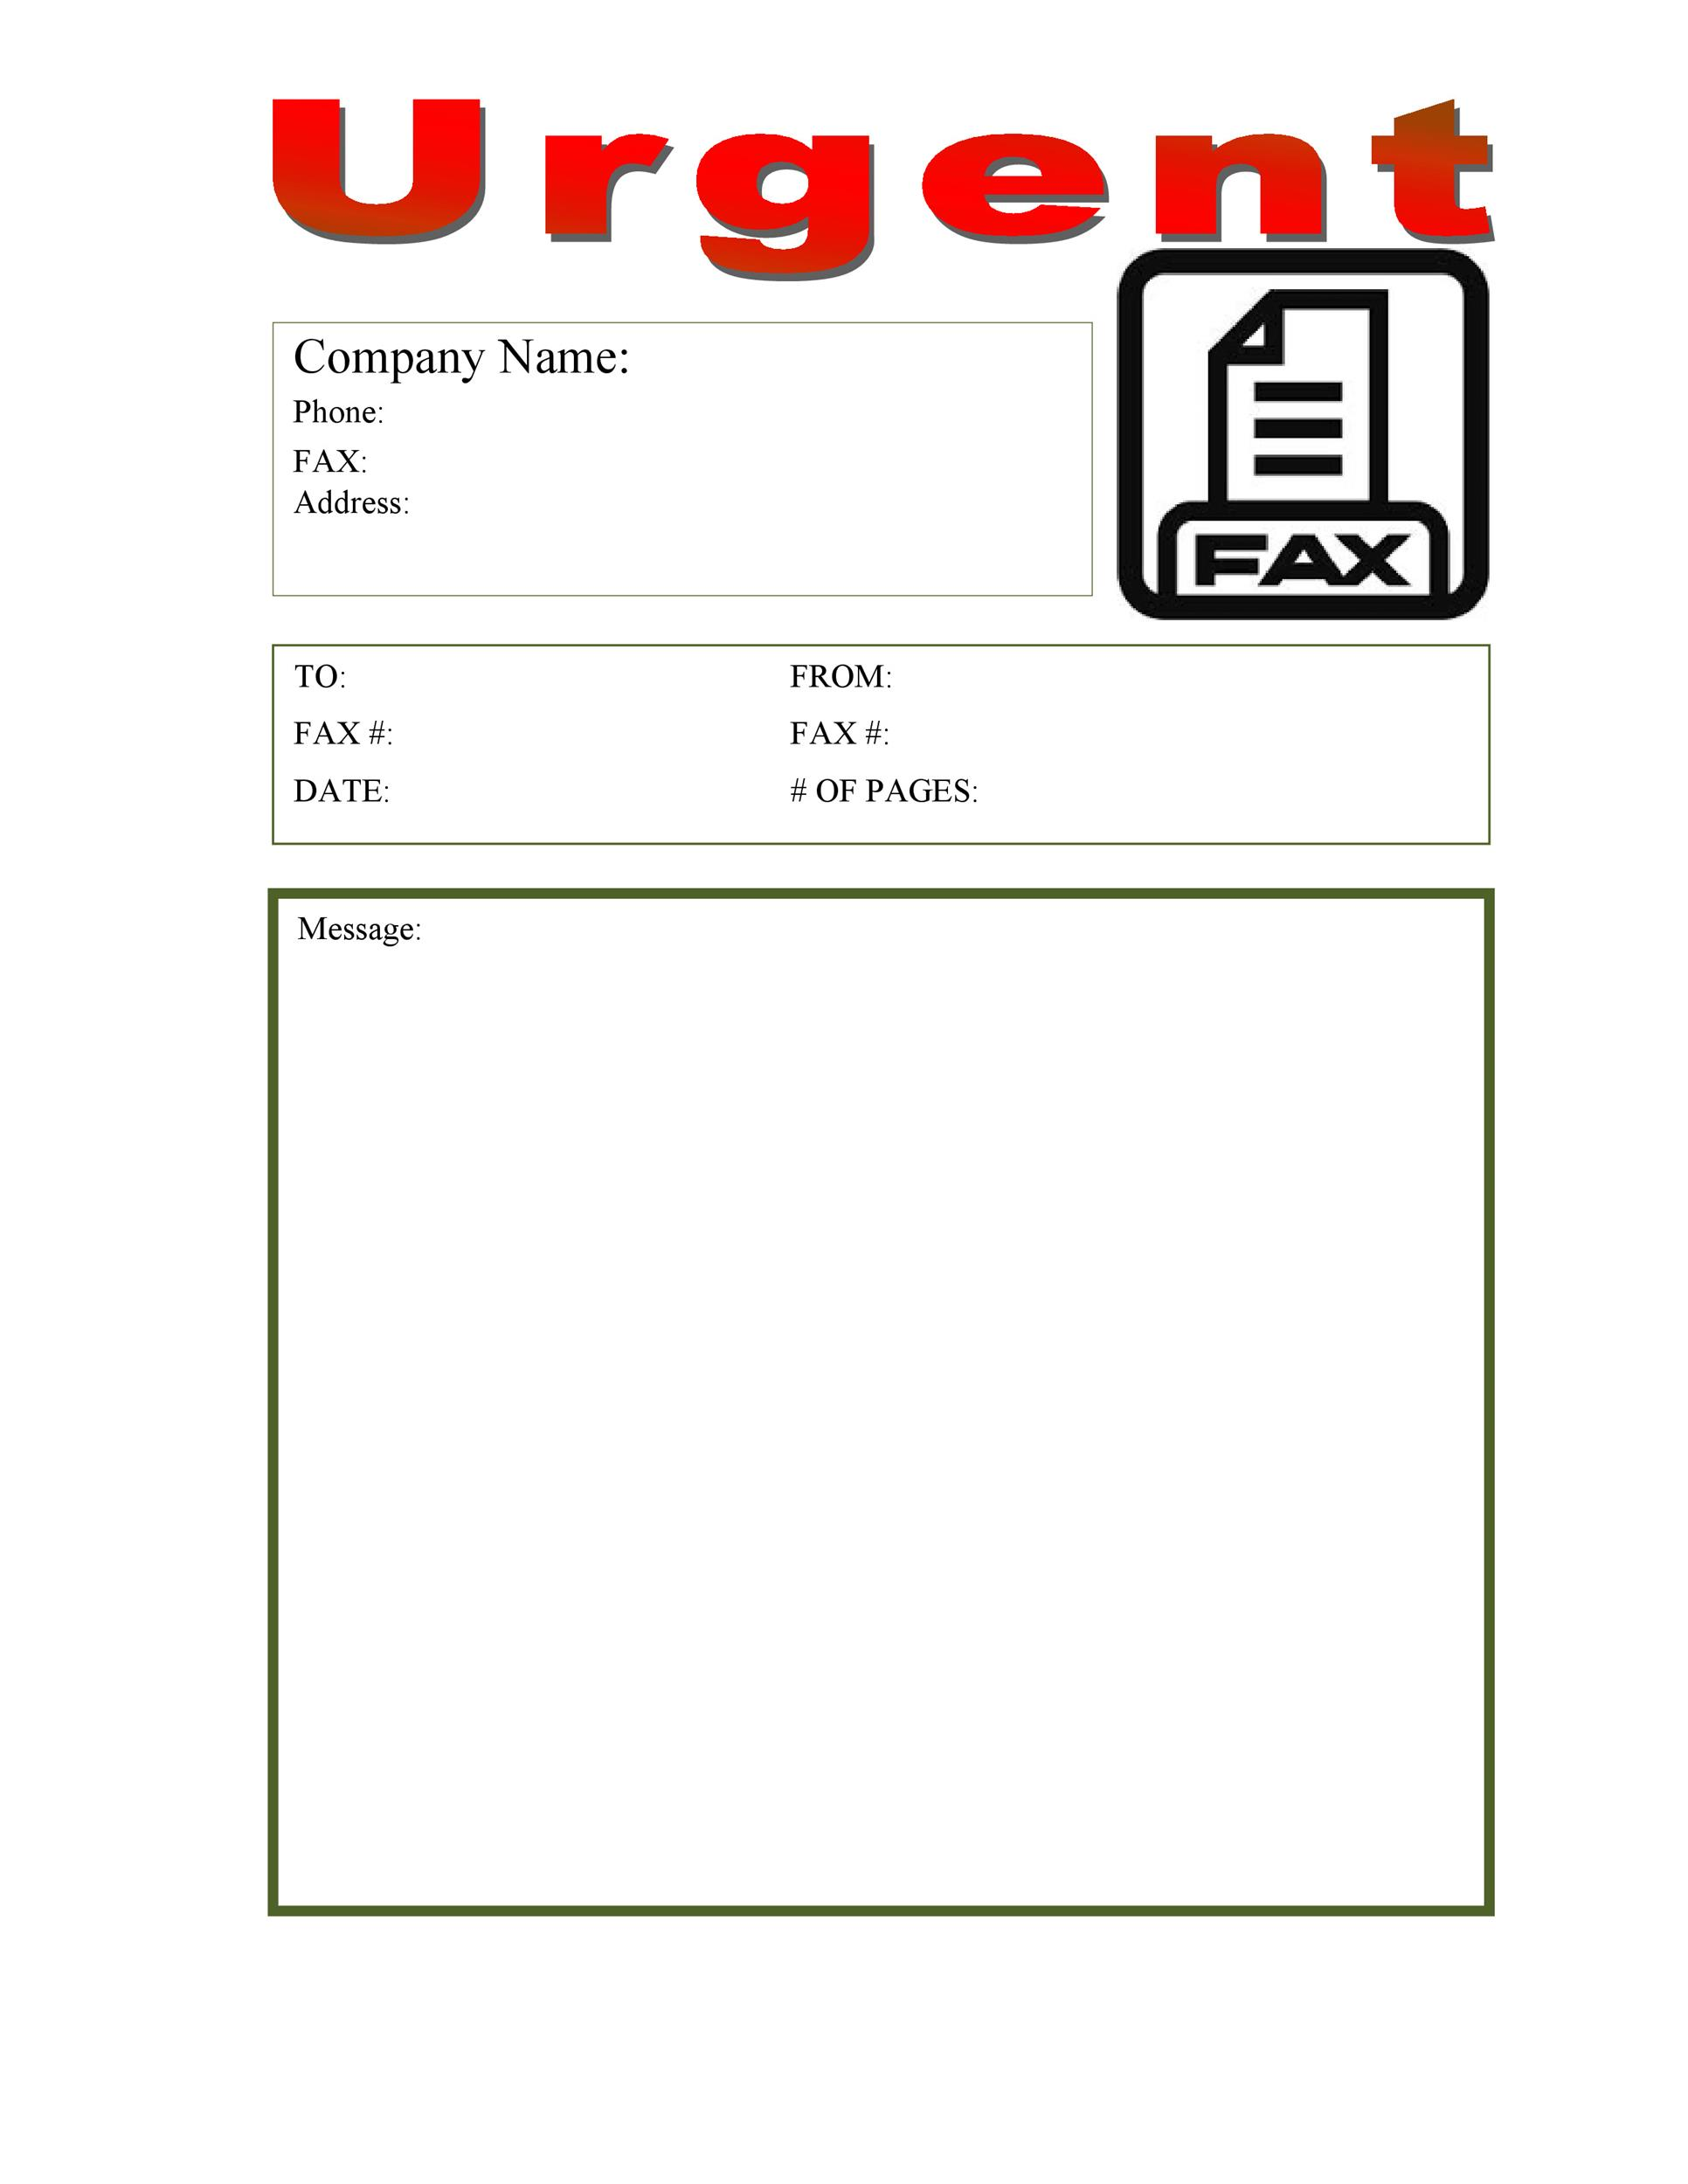 Printable Fax Cover Sheet Template 35